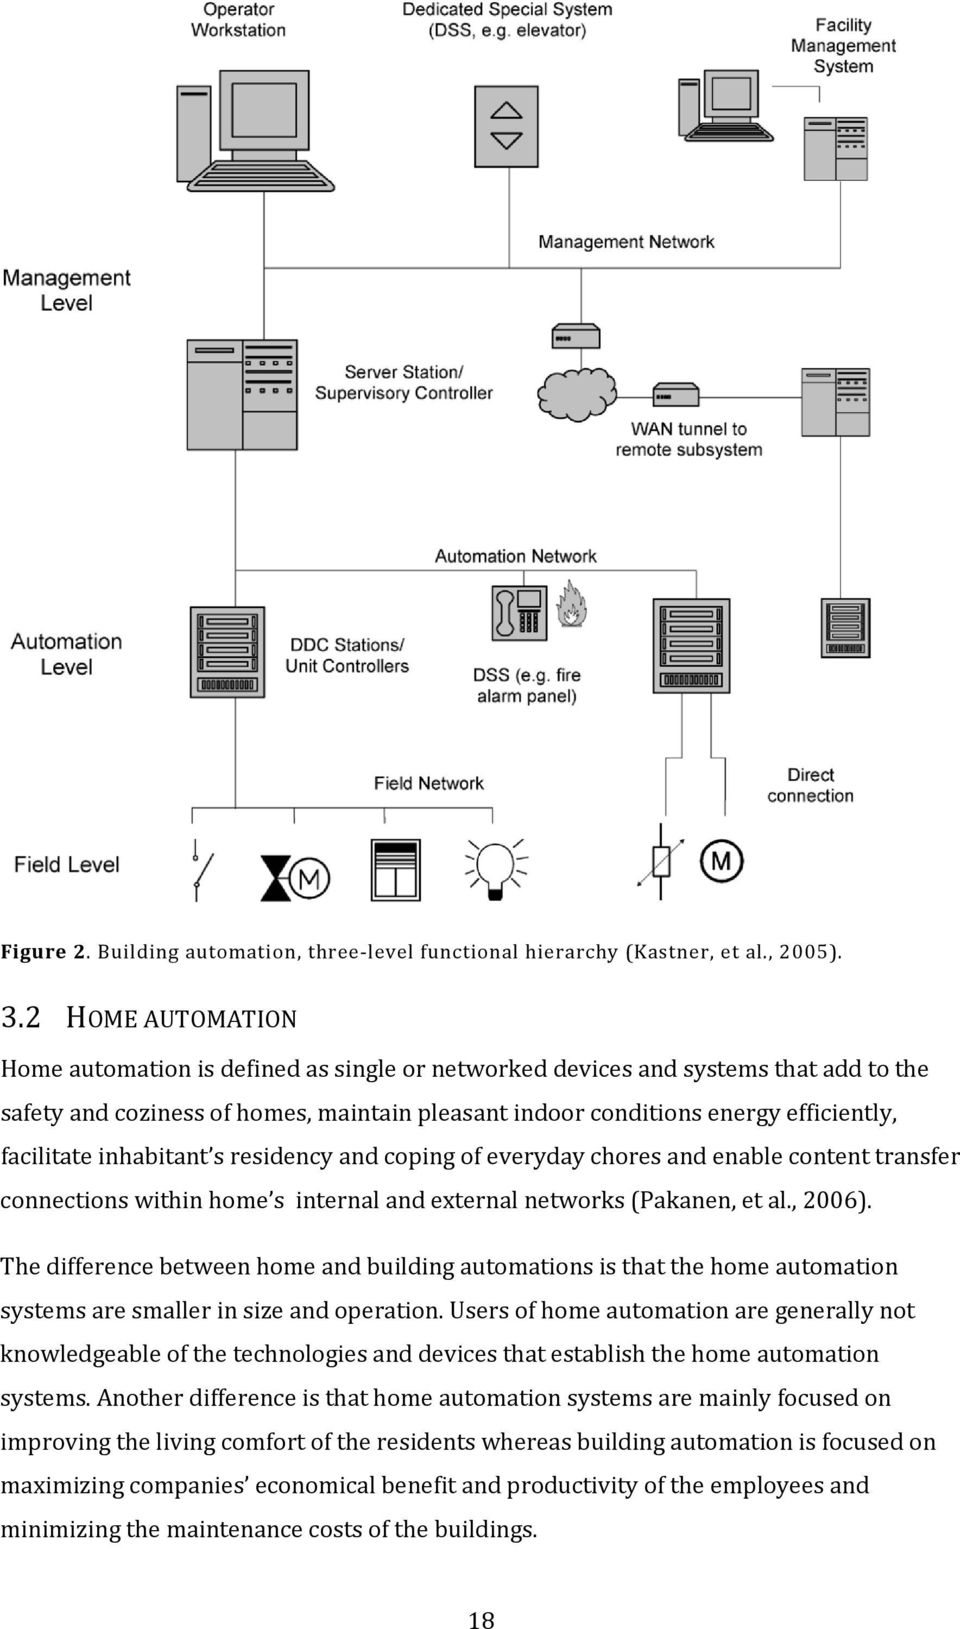 inhabitant s residency and coping of everyday chores and enable content transfer connections within home s internal and external networks (Pakanen, et al., 006).